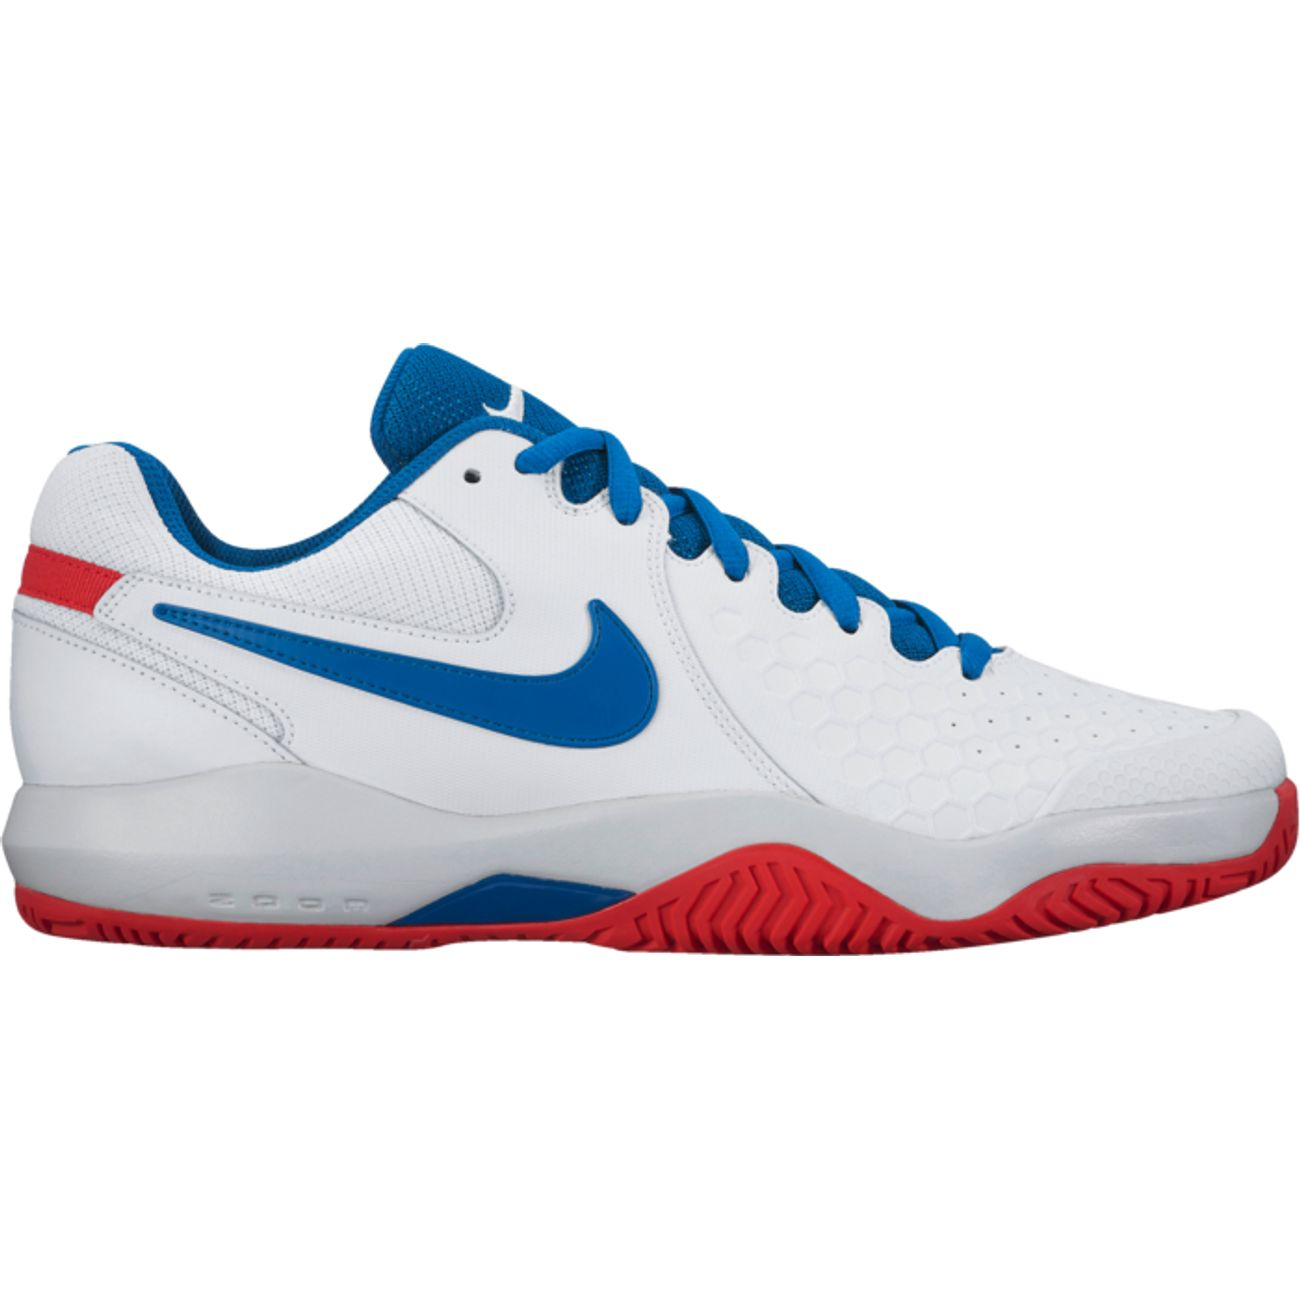 cheap for discount 7bbff 17a42 Chaussures tennis homme Tennis NIKE AIR ZOOM RESISTANCE ...